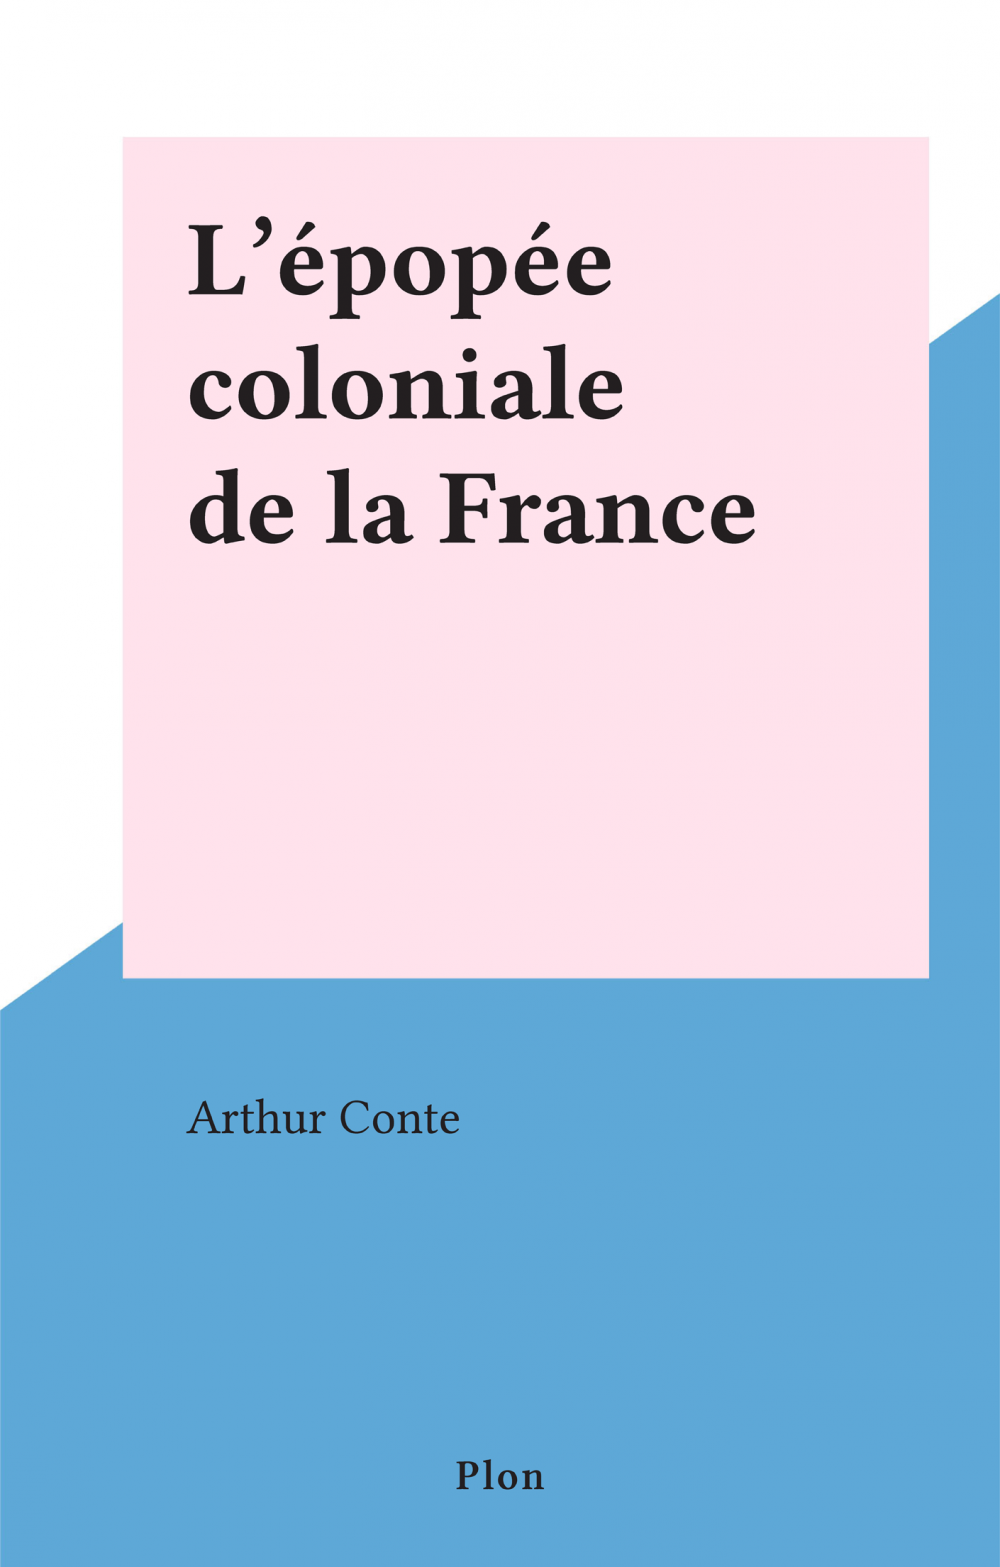 L'épopée coloniale de la France